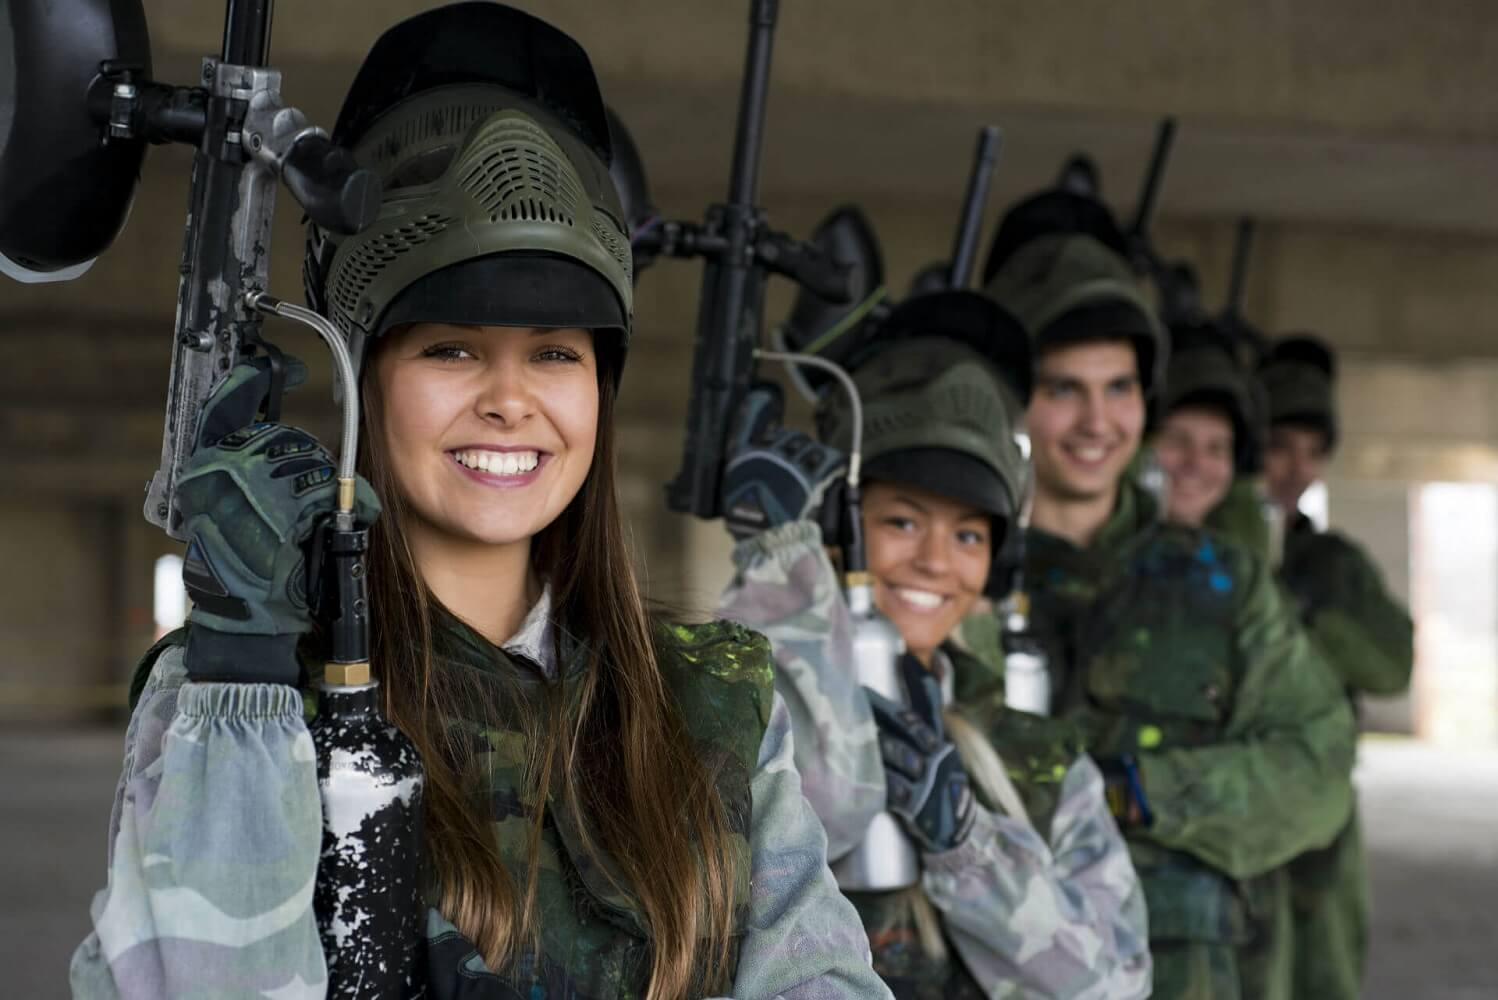 List of Big Paintball Centre NYC - Paintball Places Near me